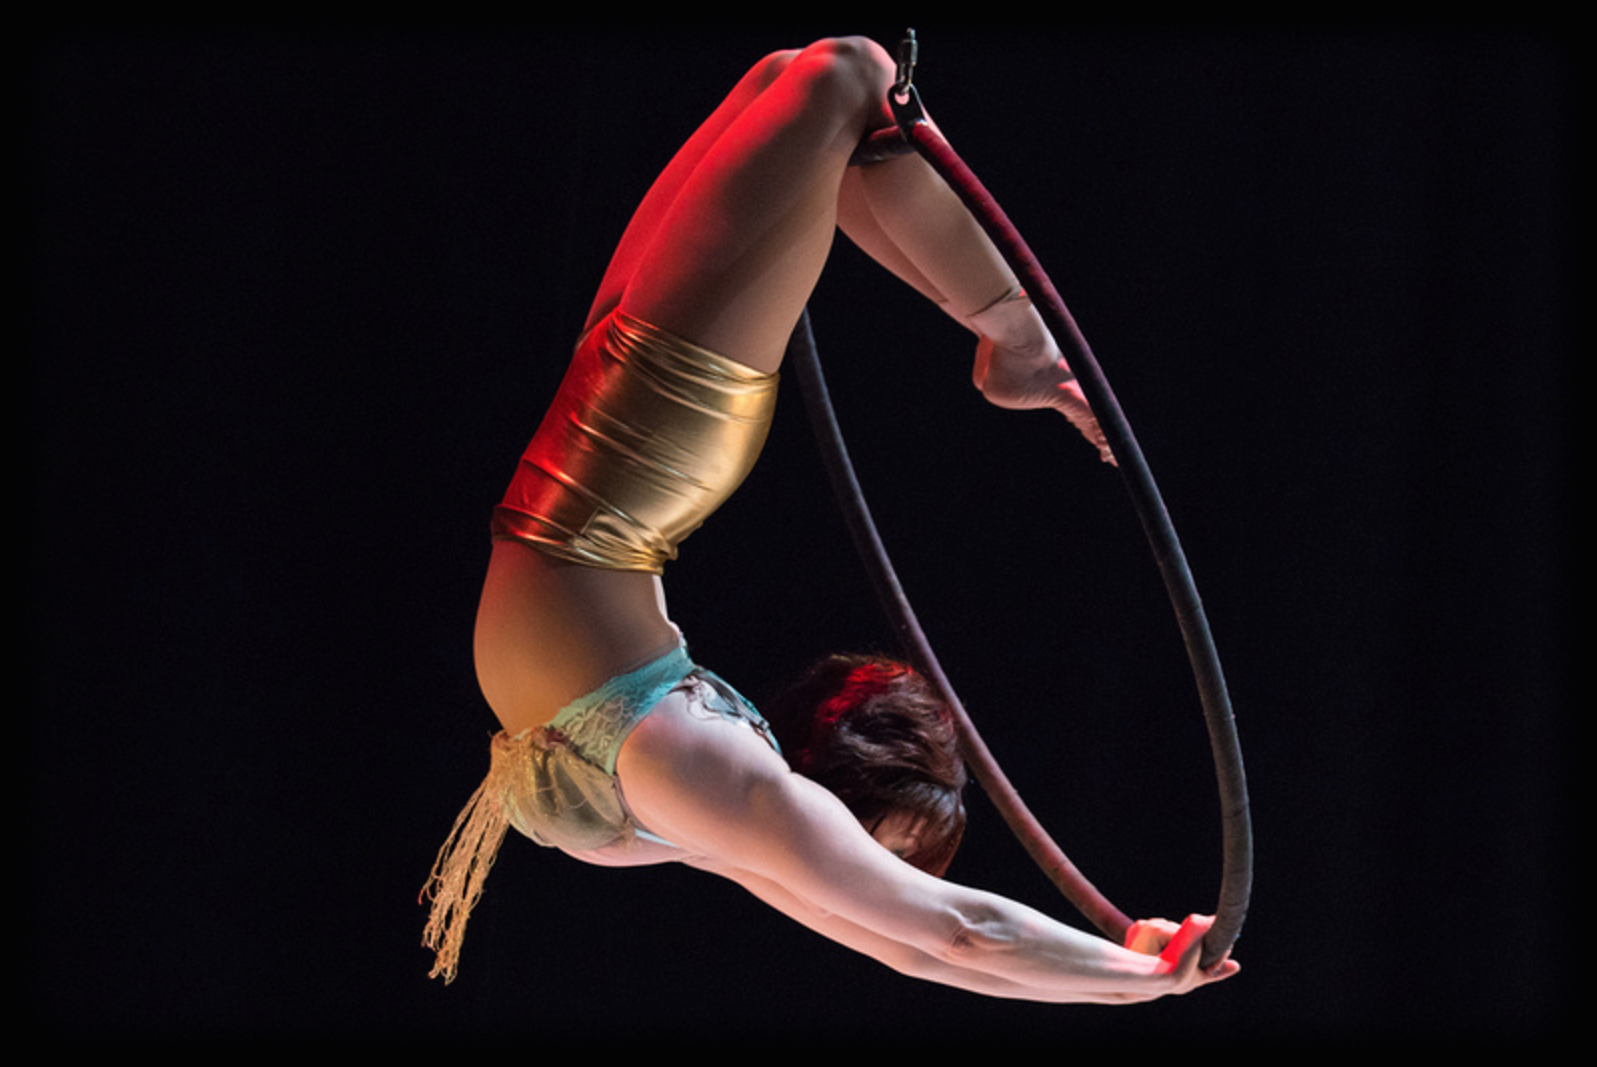 Definition of Acrobat at